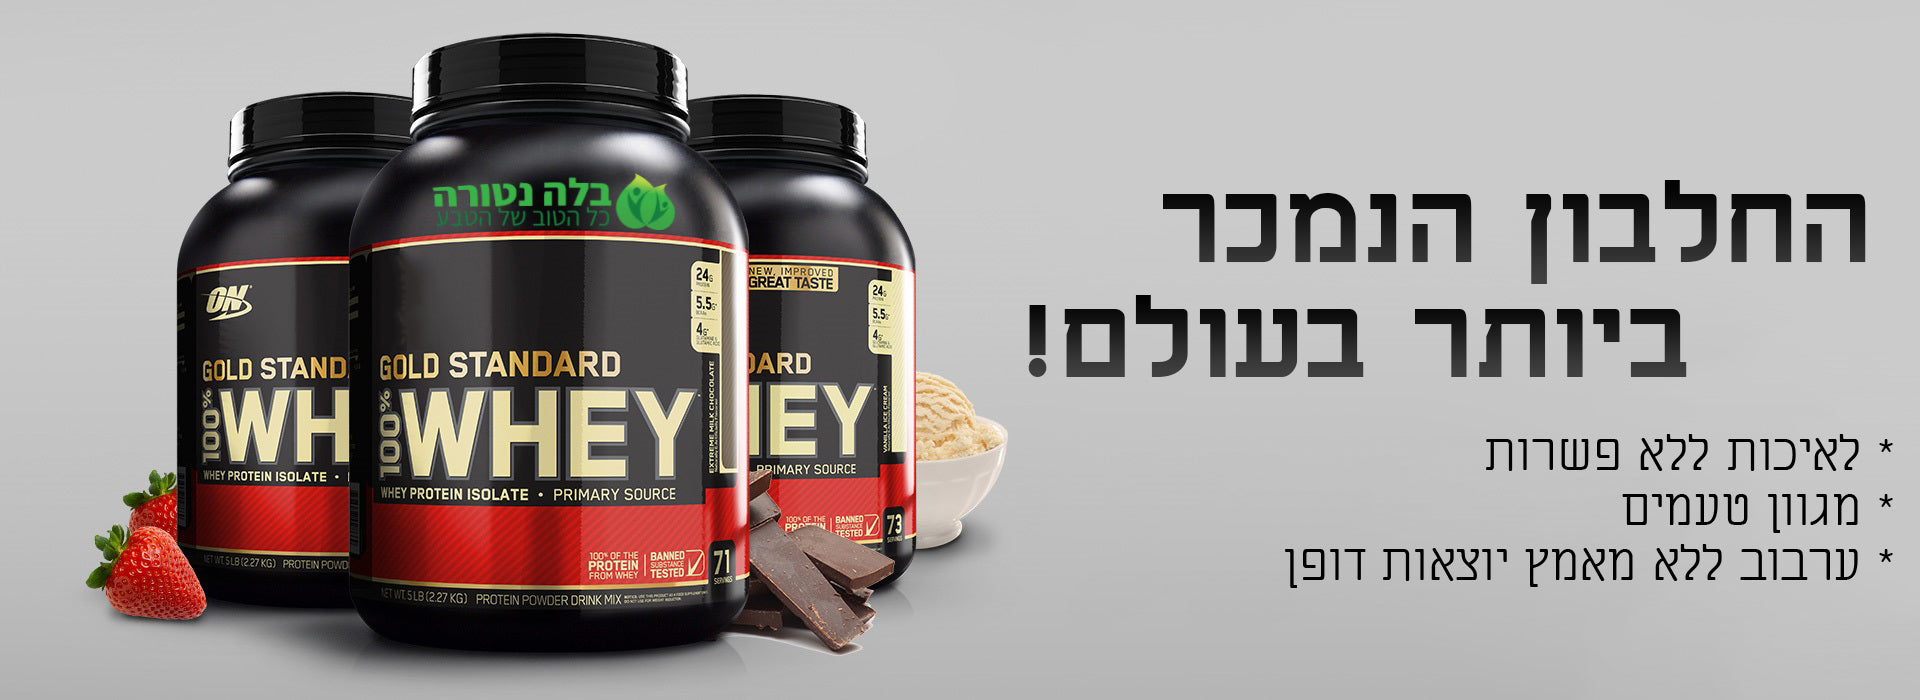 אופטימום נוטרישן | Optimum Nutrition